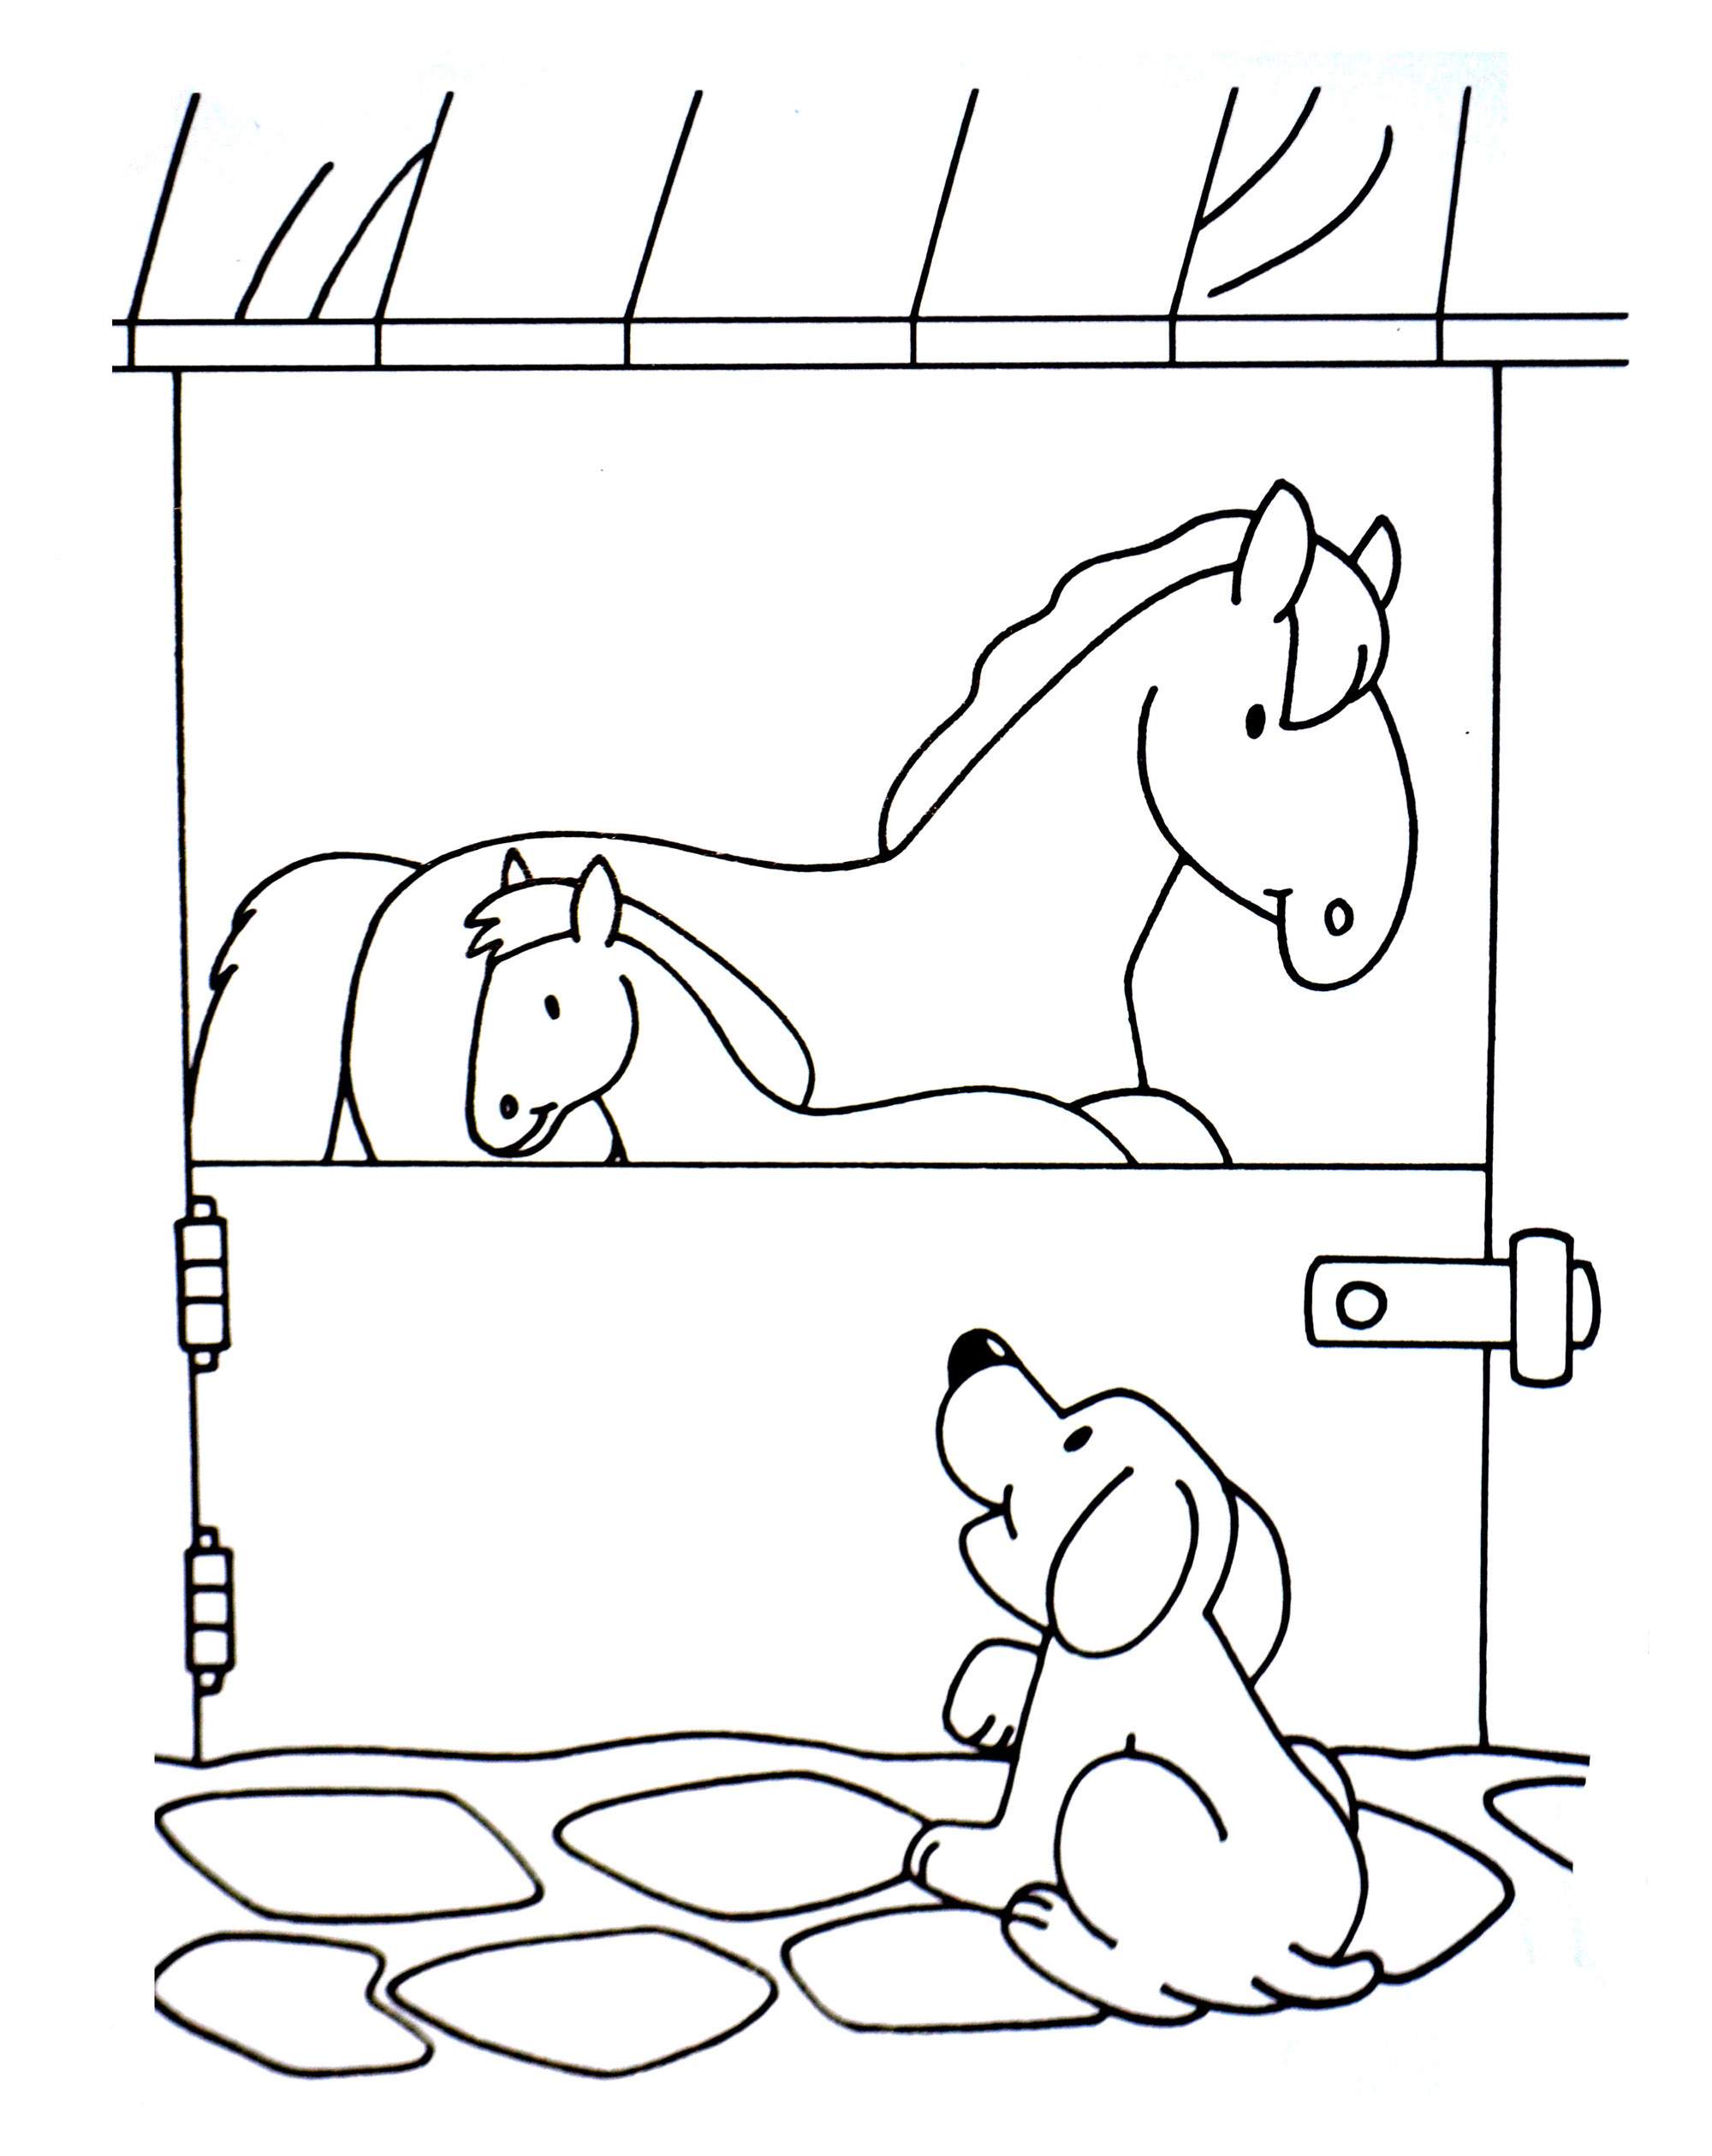 Dog coloring page to download for free : dog and horses